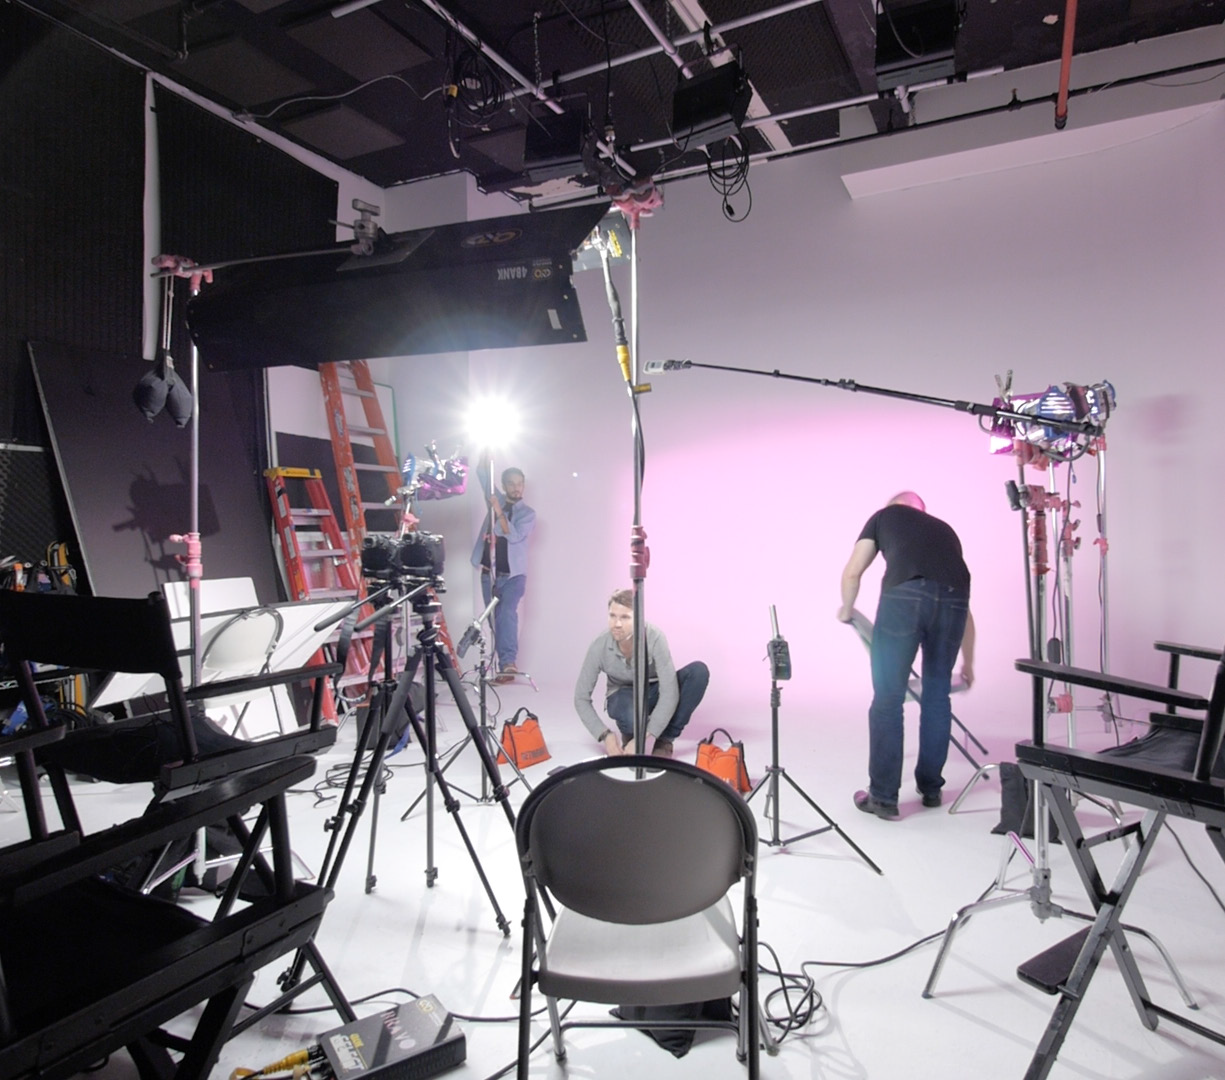 Professional Corporate Video Shooting for Long Island Businesses - Top Notch Cinema - About-us